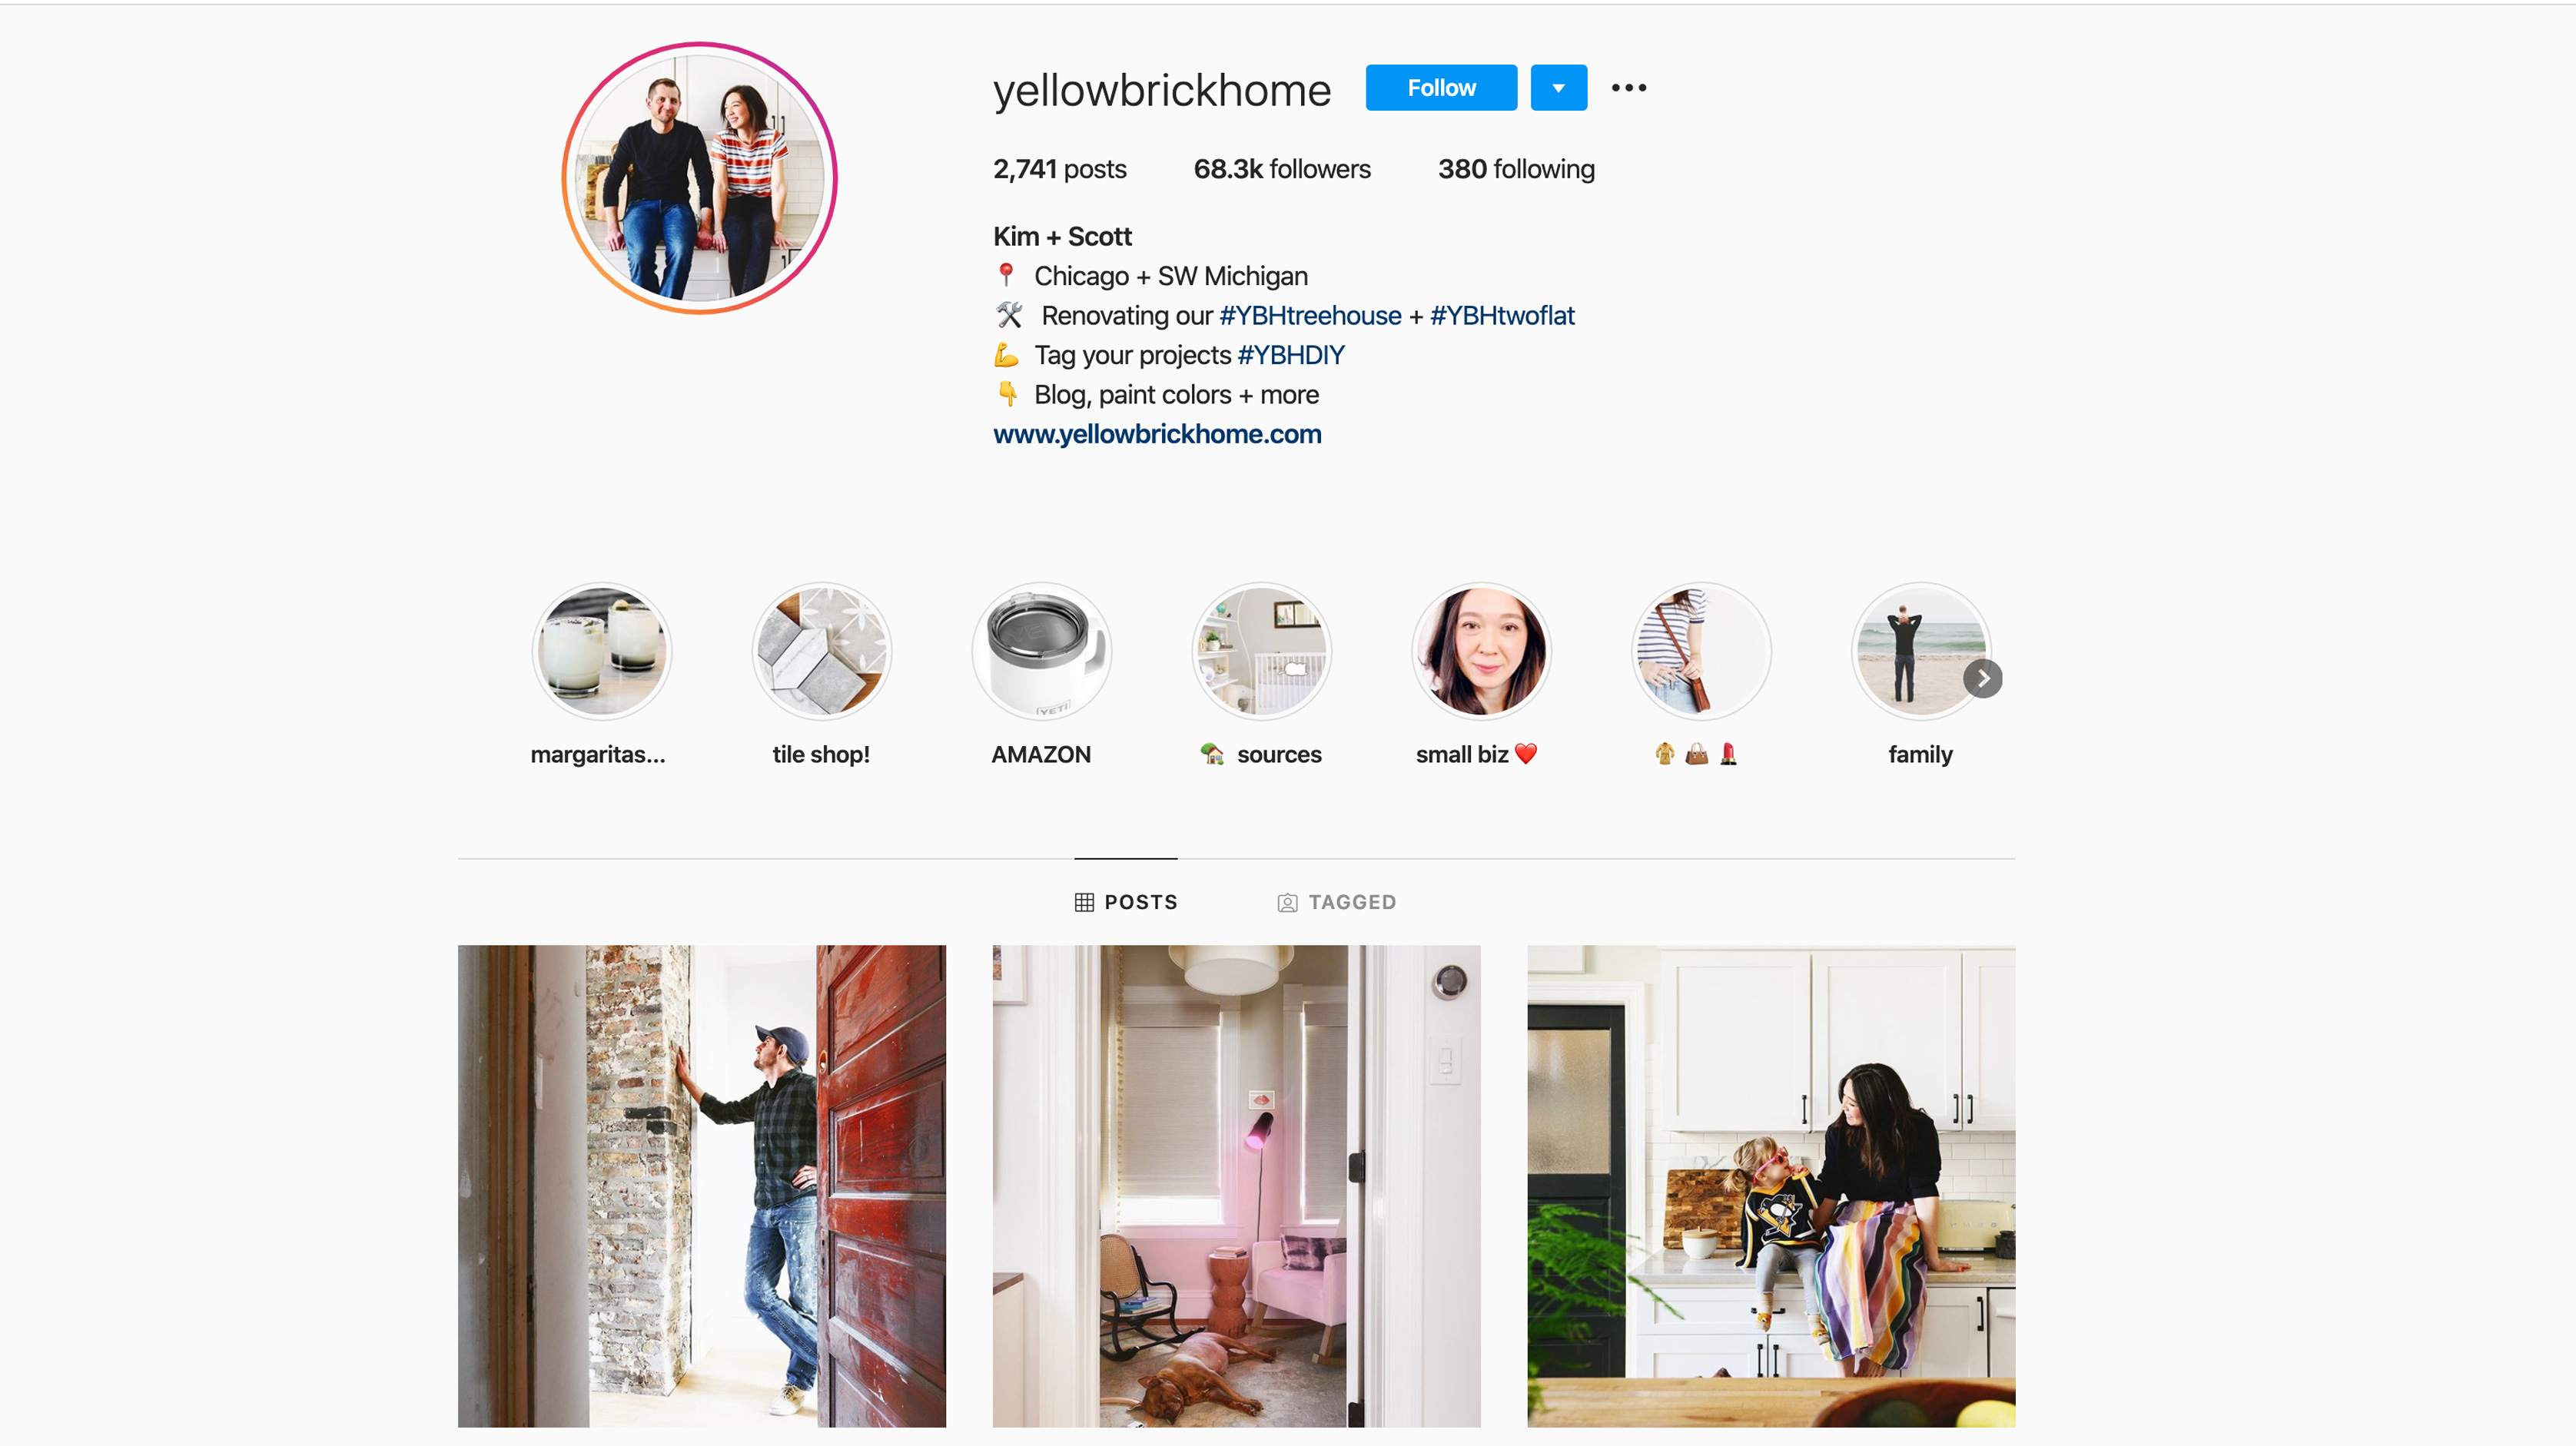 yellowbrickhome home improvement influencers